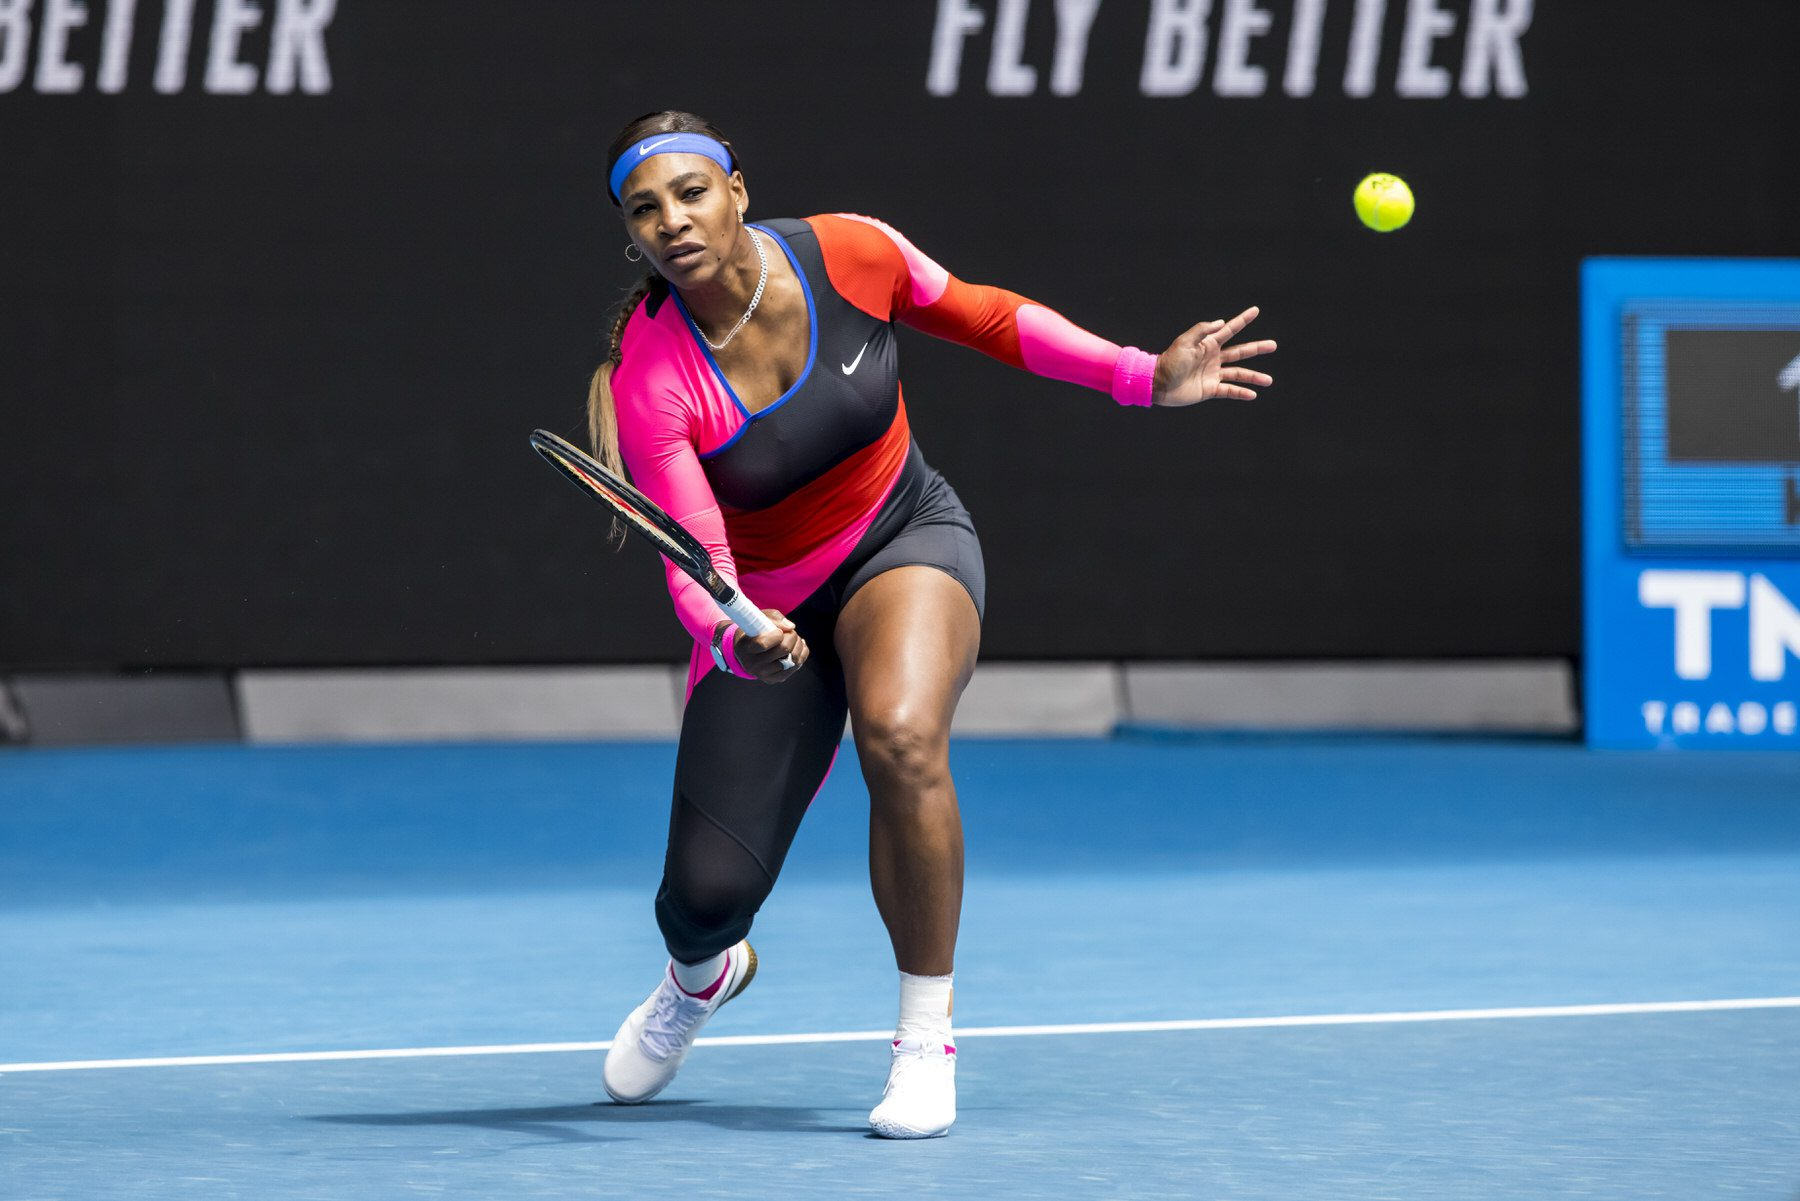 Serena Williams of the United States of America returns the ball during round 1 of the 2021 Australian Open.